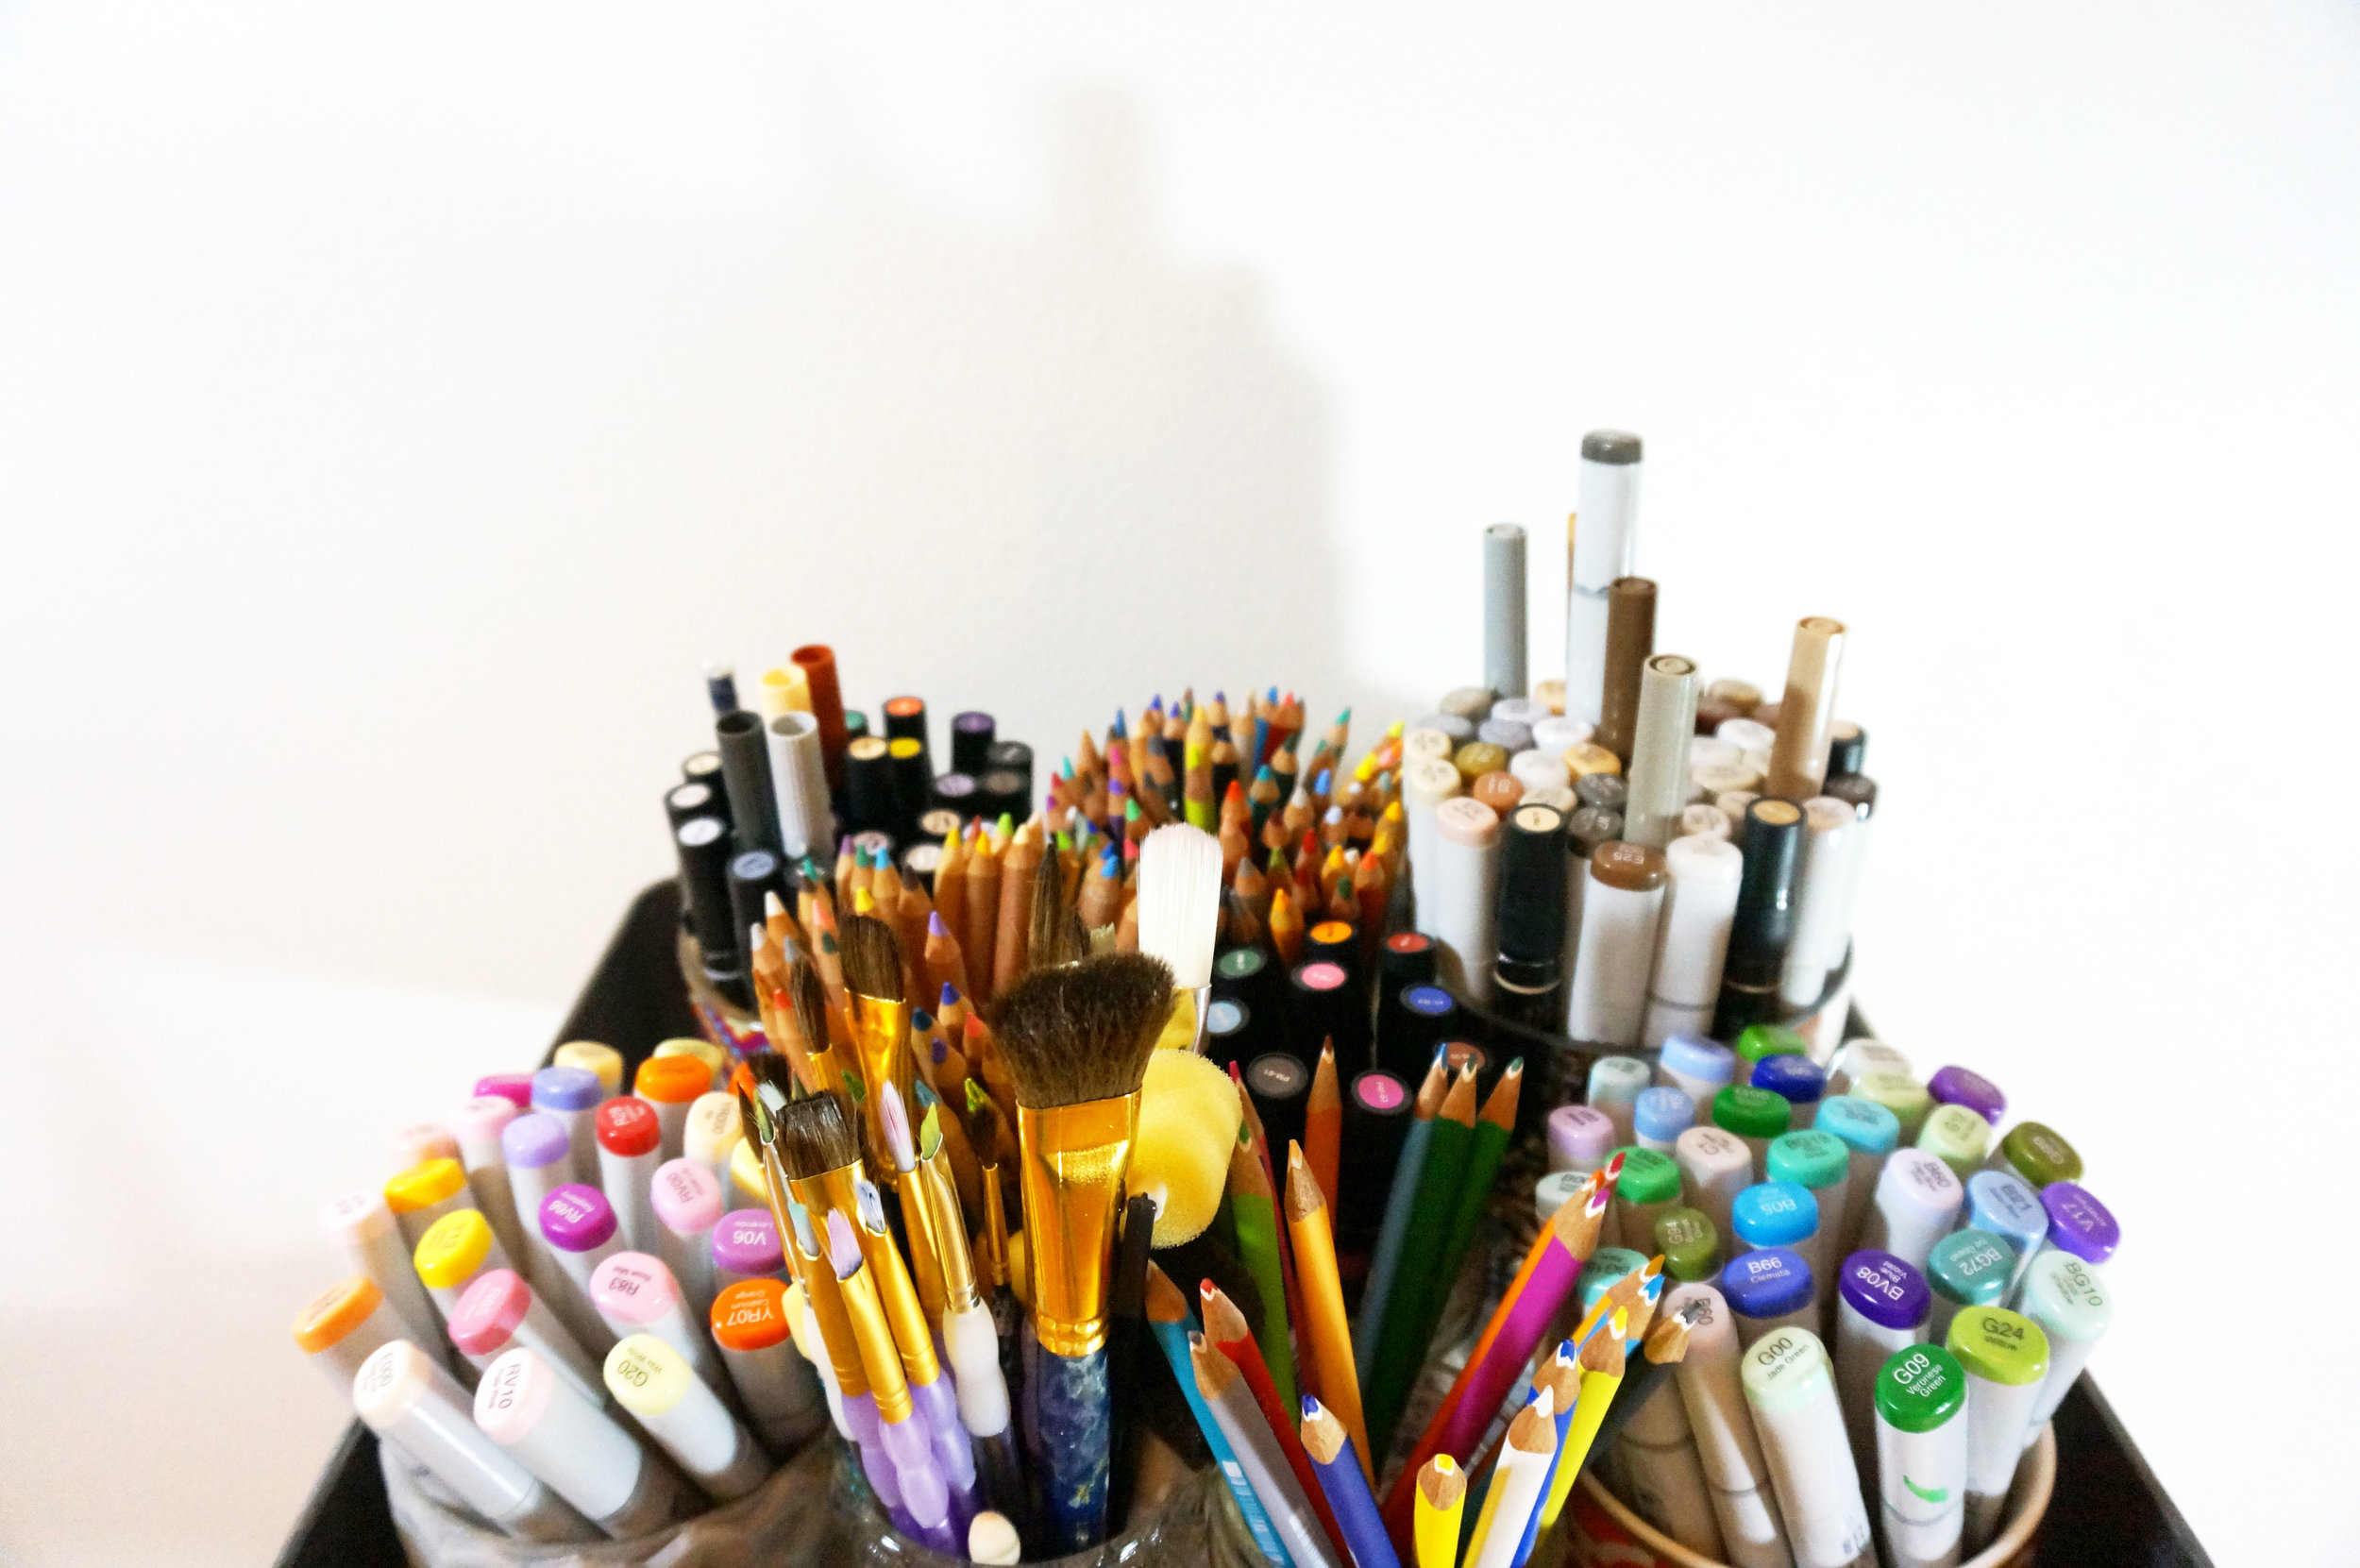 Rendering is something I love to do, so I keep a basket of rendering tools by my drafting table for sketching out product ideas.